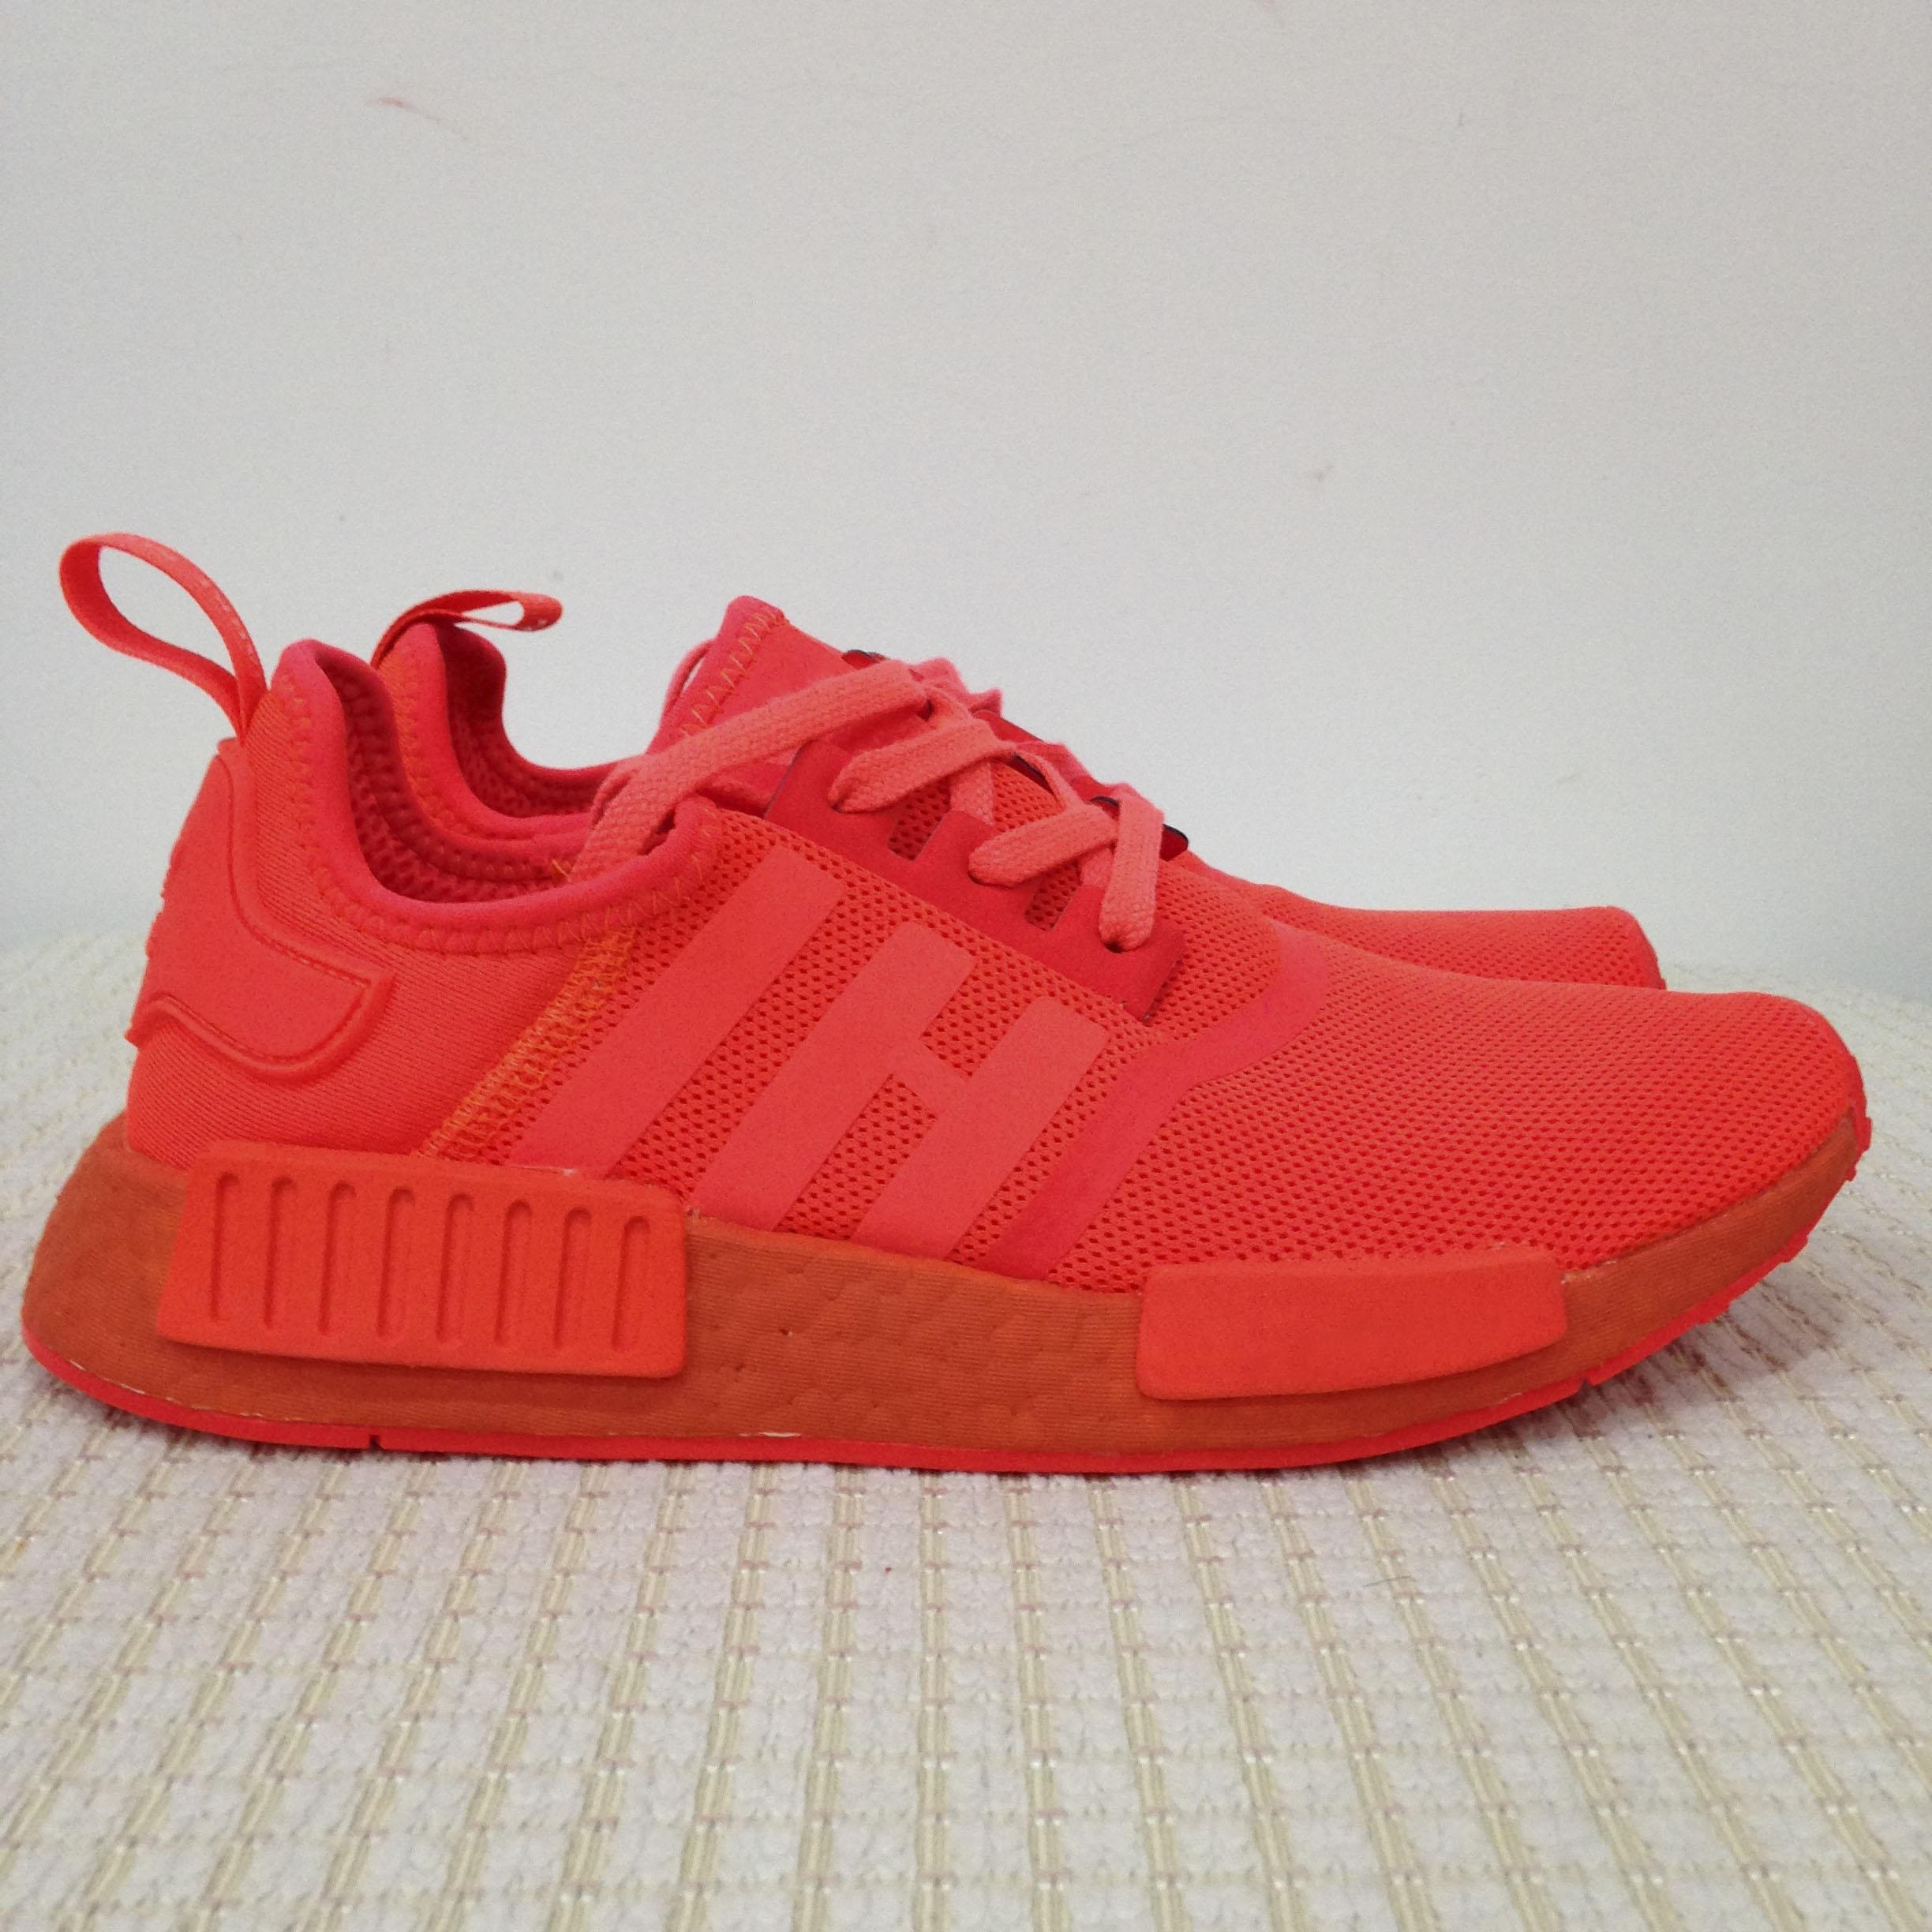 info for cc25b aa815 2017 2017 Hot Sale Nmd R1 Solar Red Running Shoes For Men S31507 Perfect  High Quality Version Nmds Ri Runner Sneakers Women From Bravebean, $82.87 |  ...